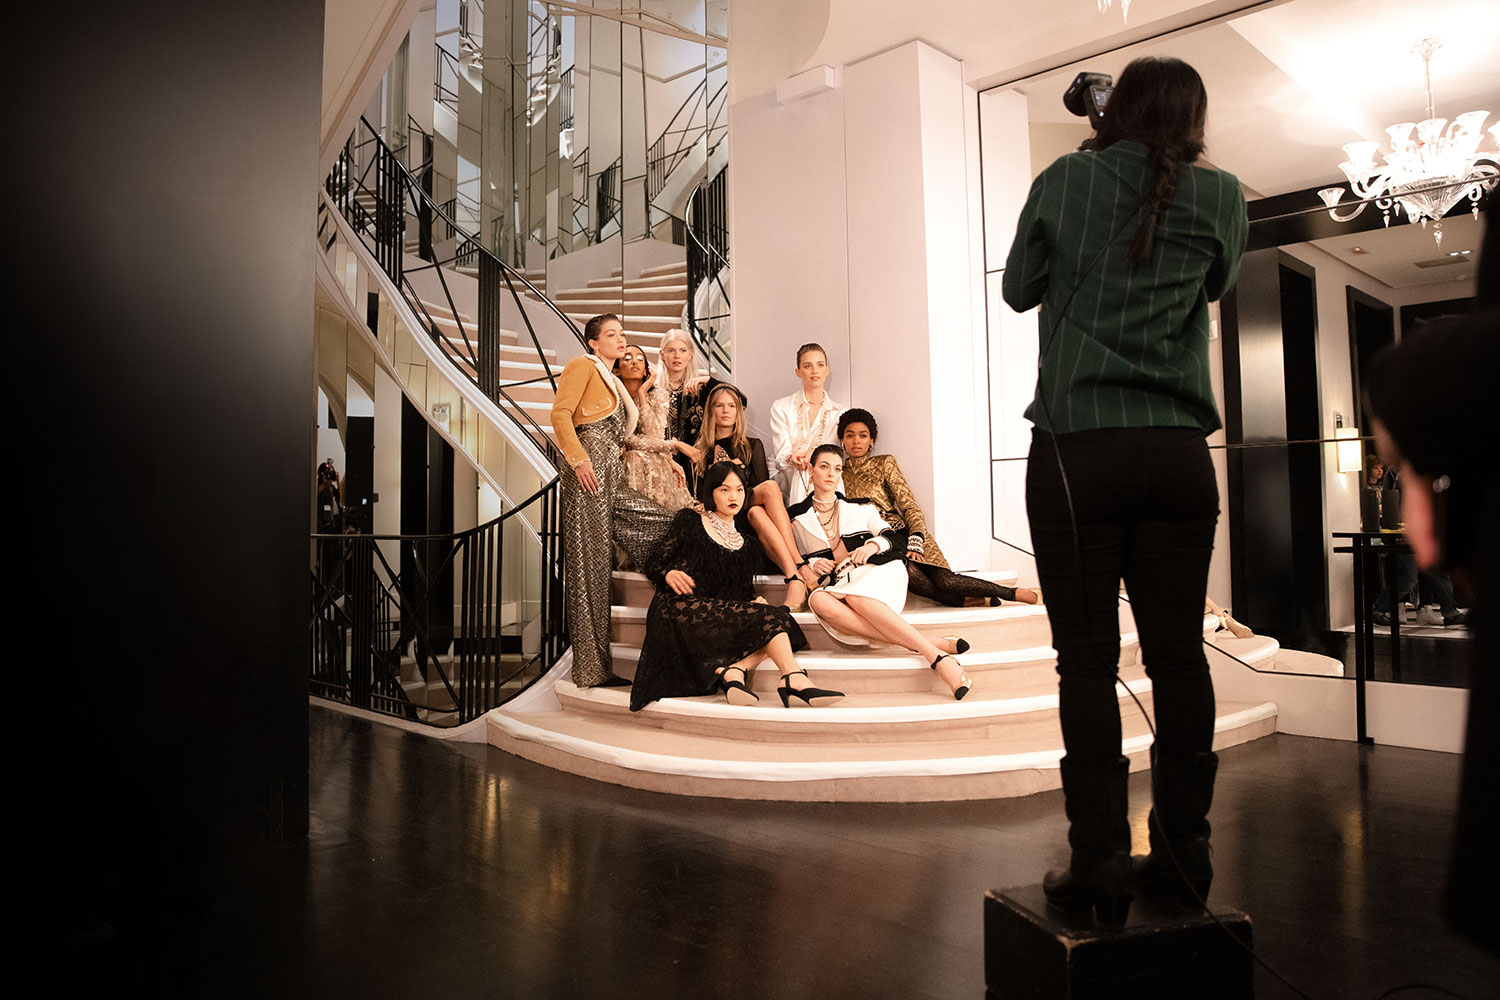 metiers d'art chanel collection behind the scenes